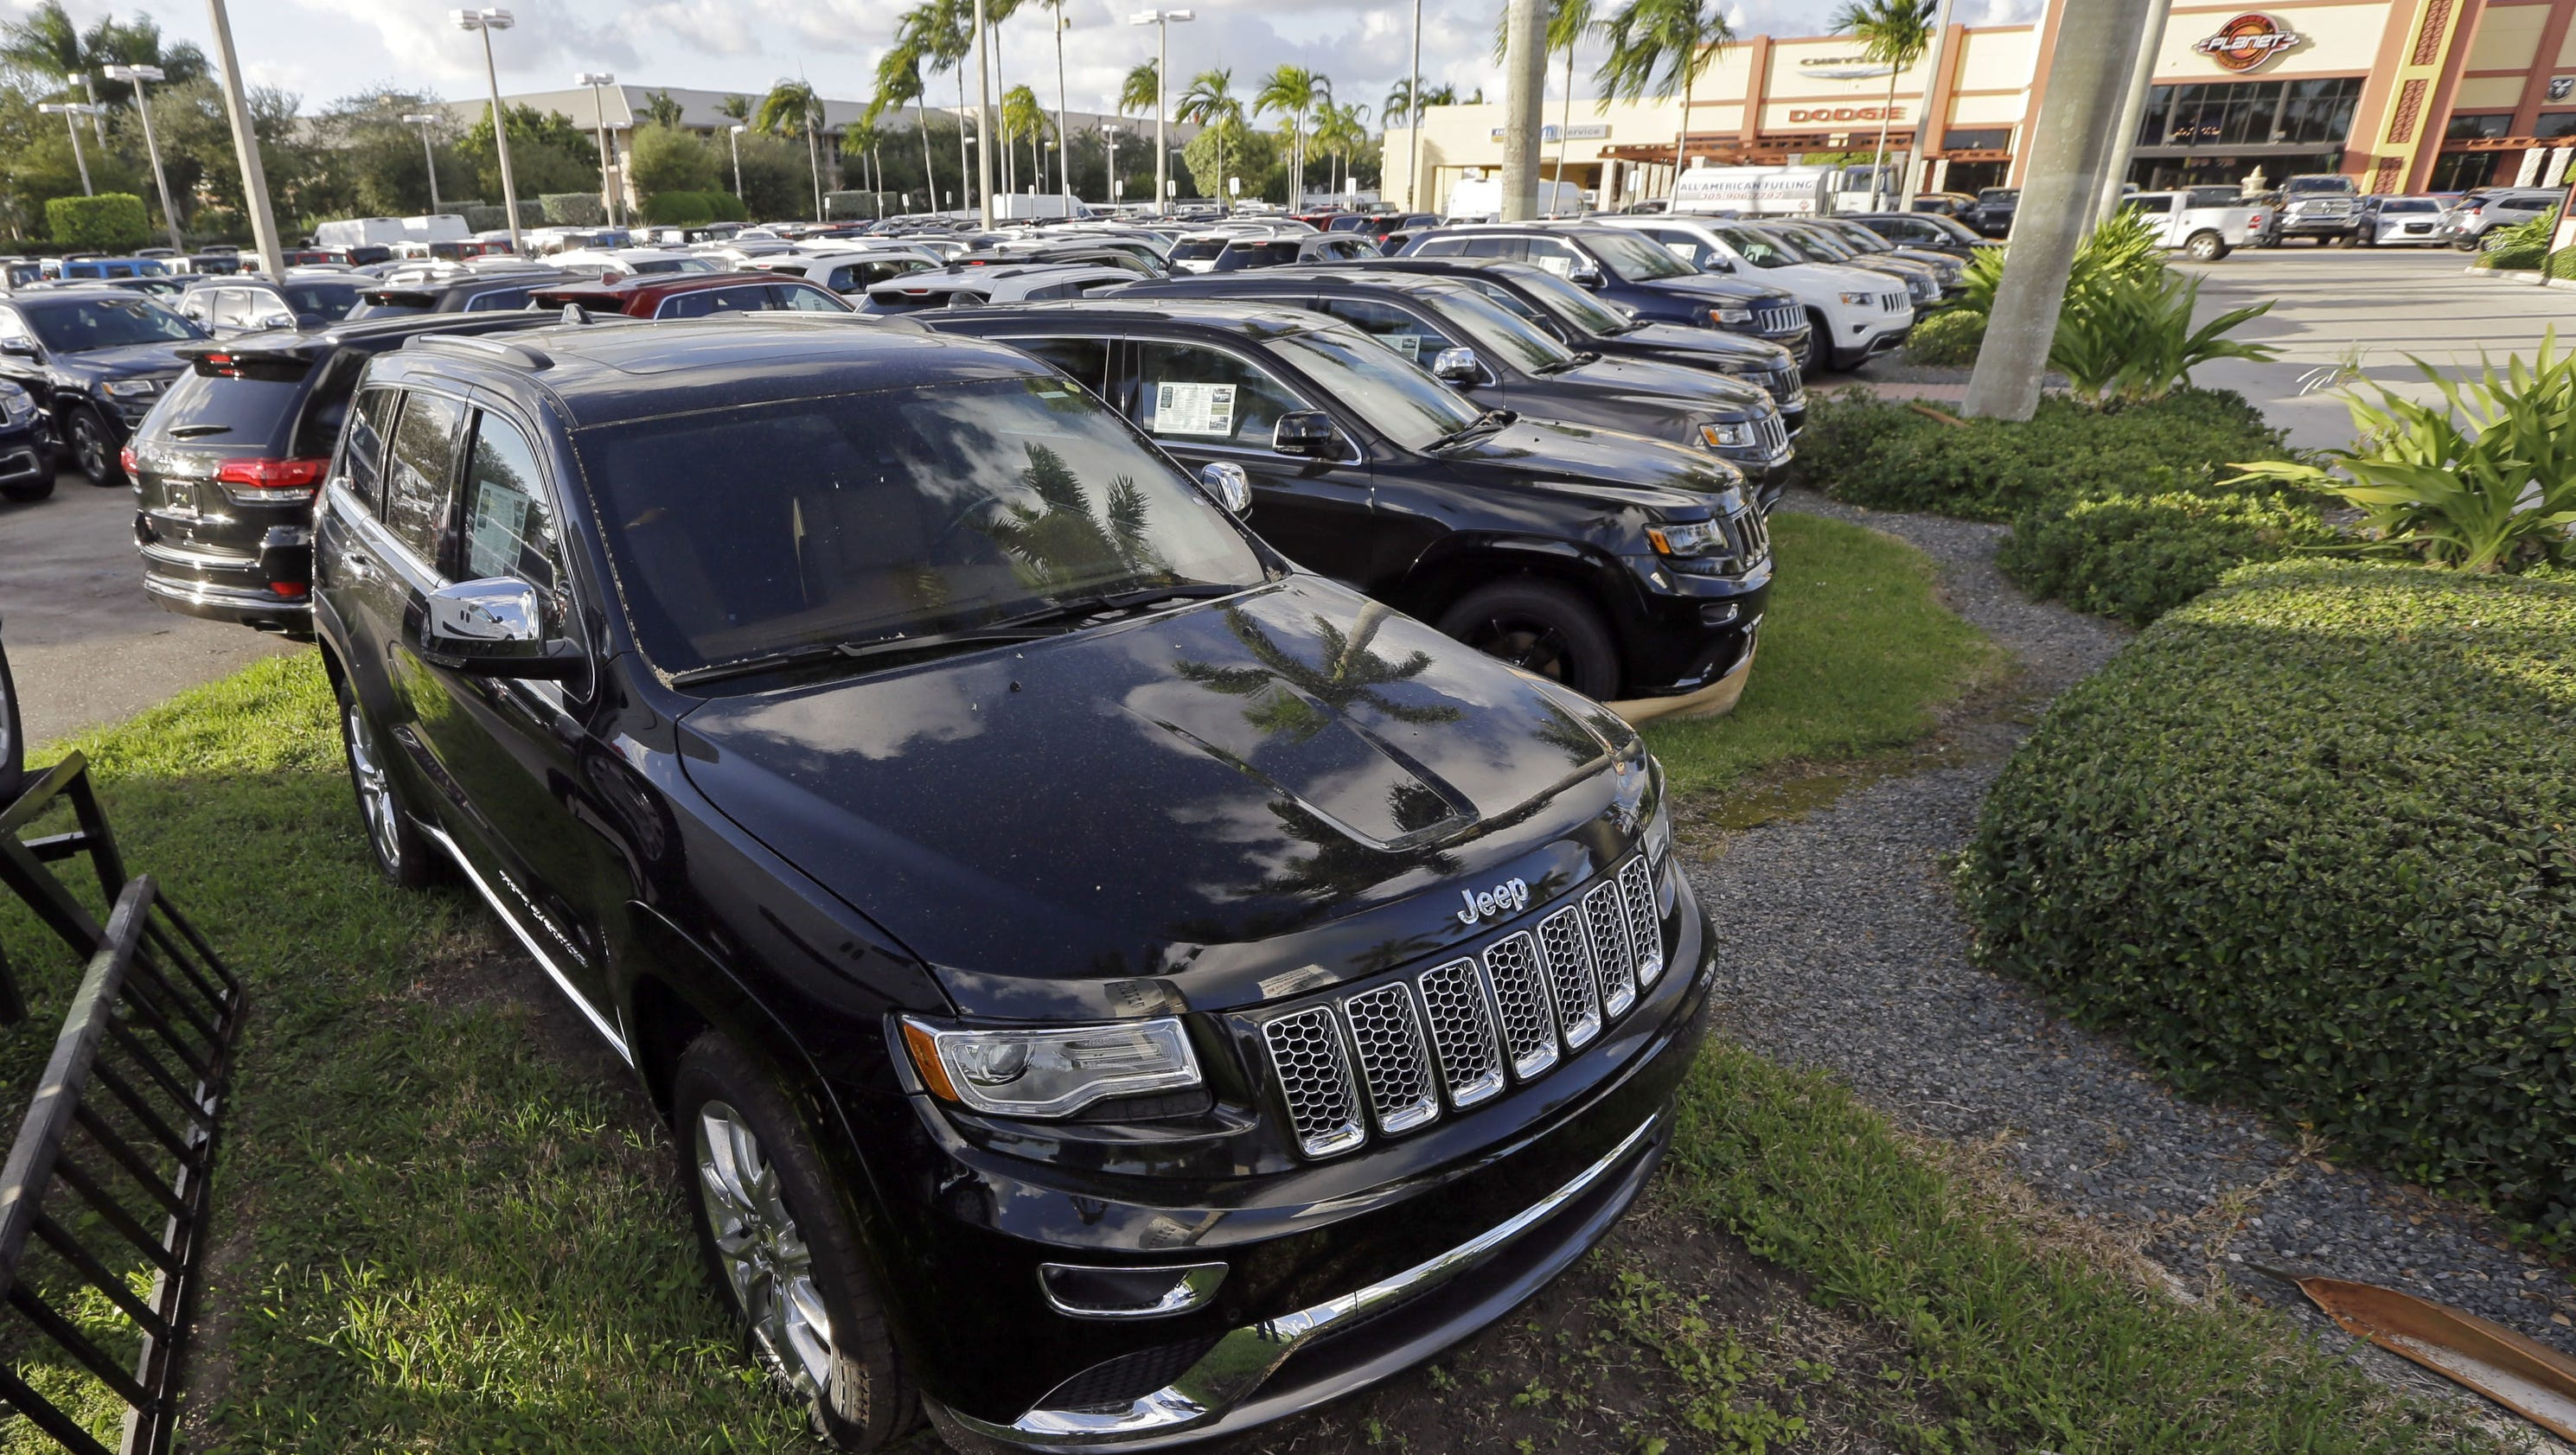 EPA accuses Fiat Chrysler of cheating emissions laws